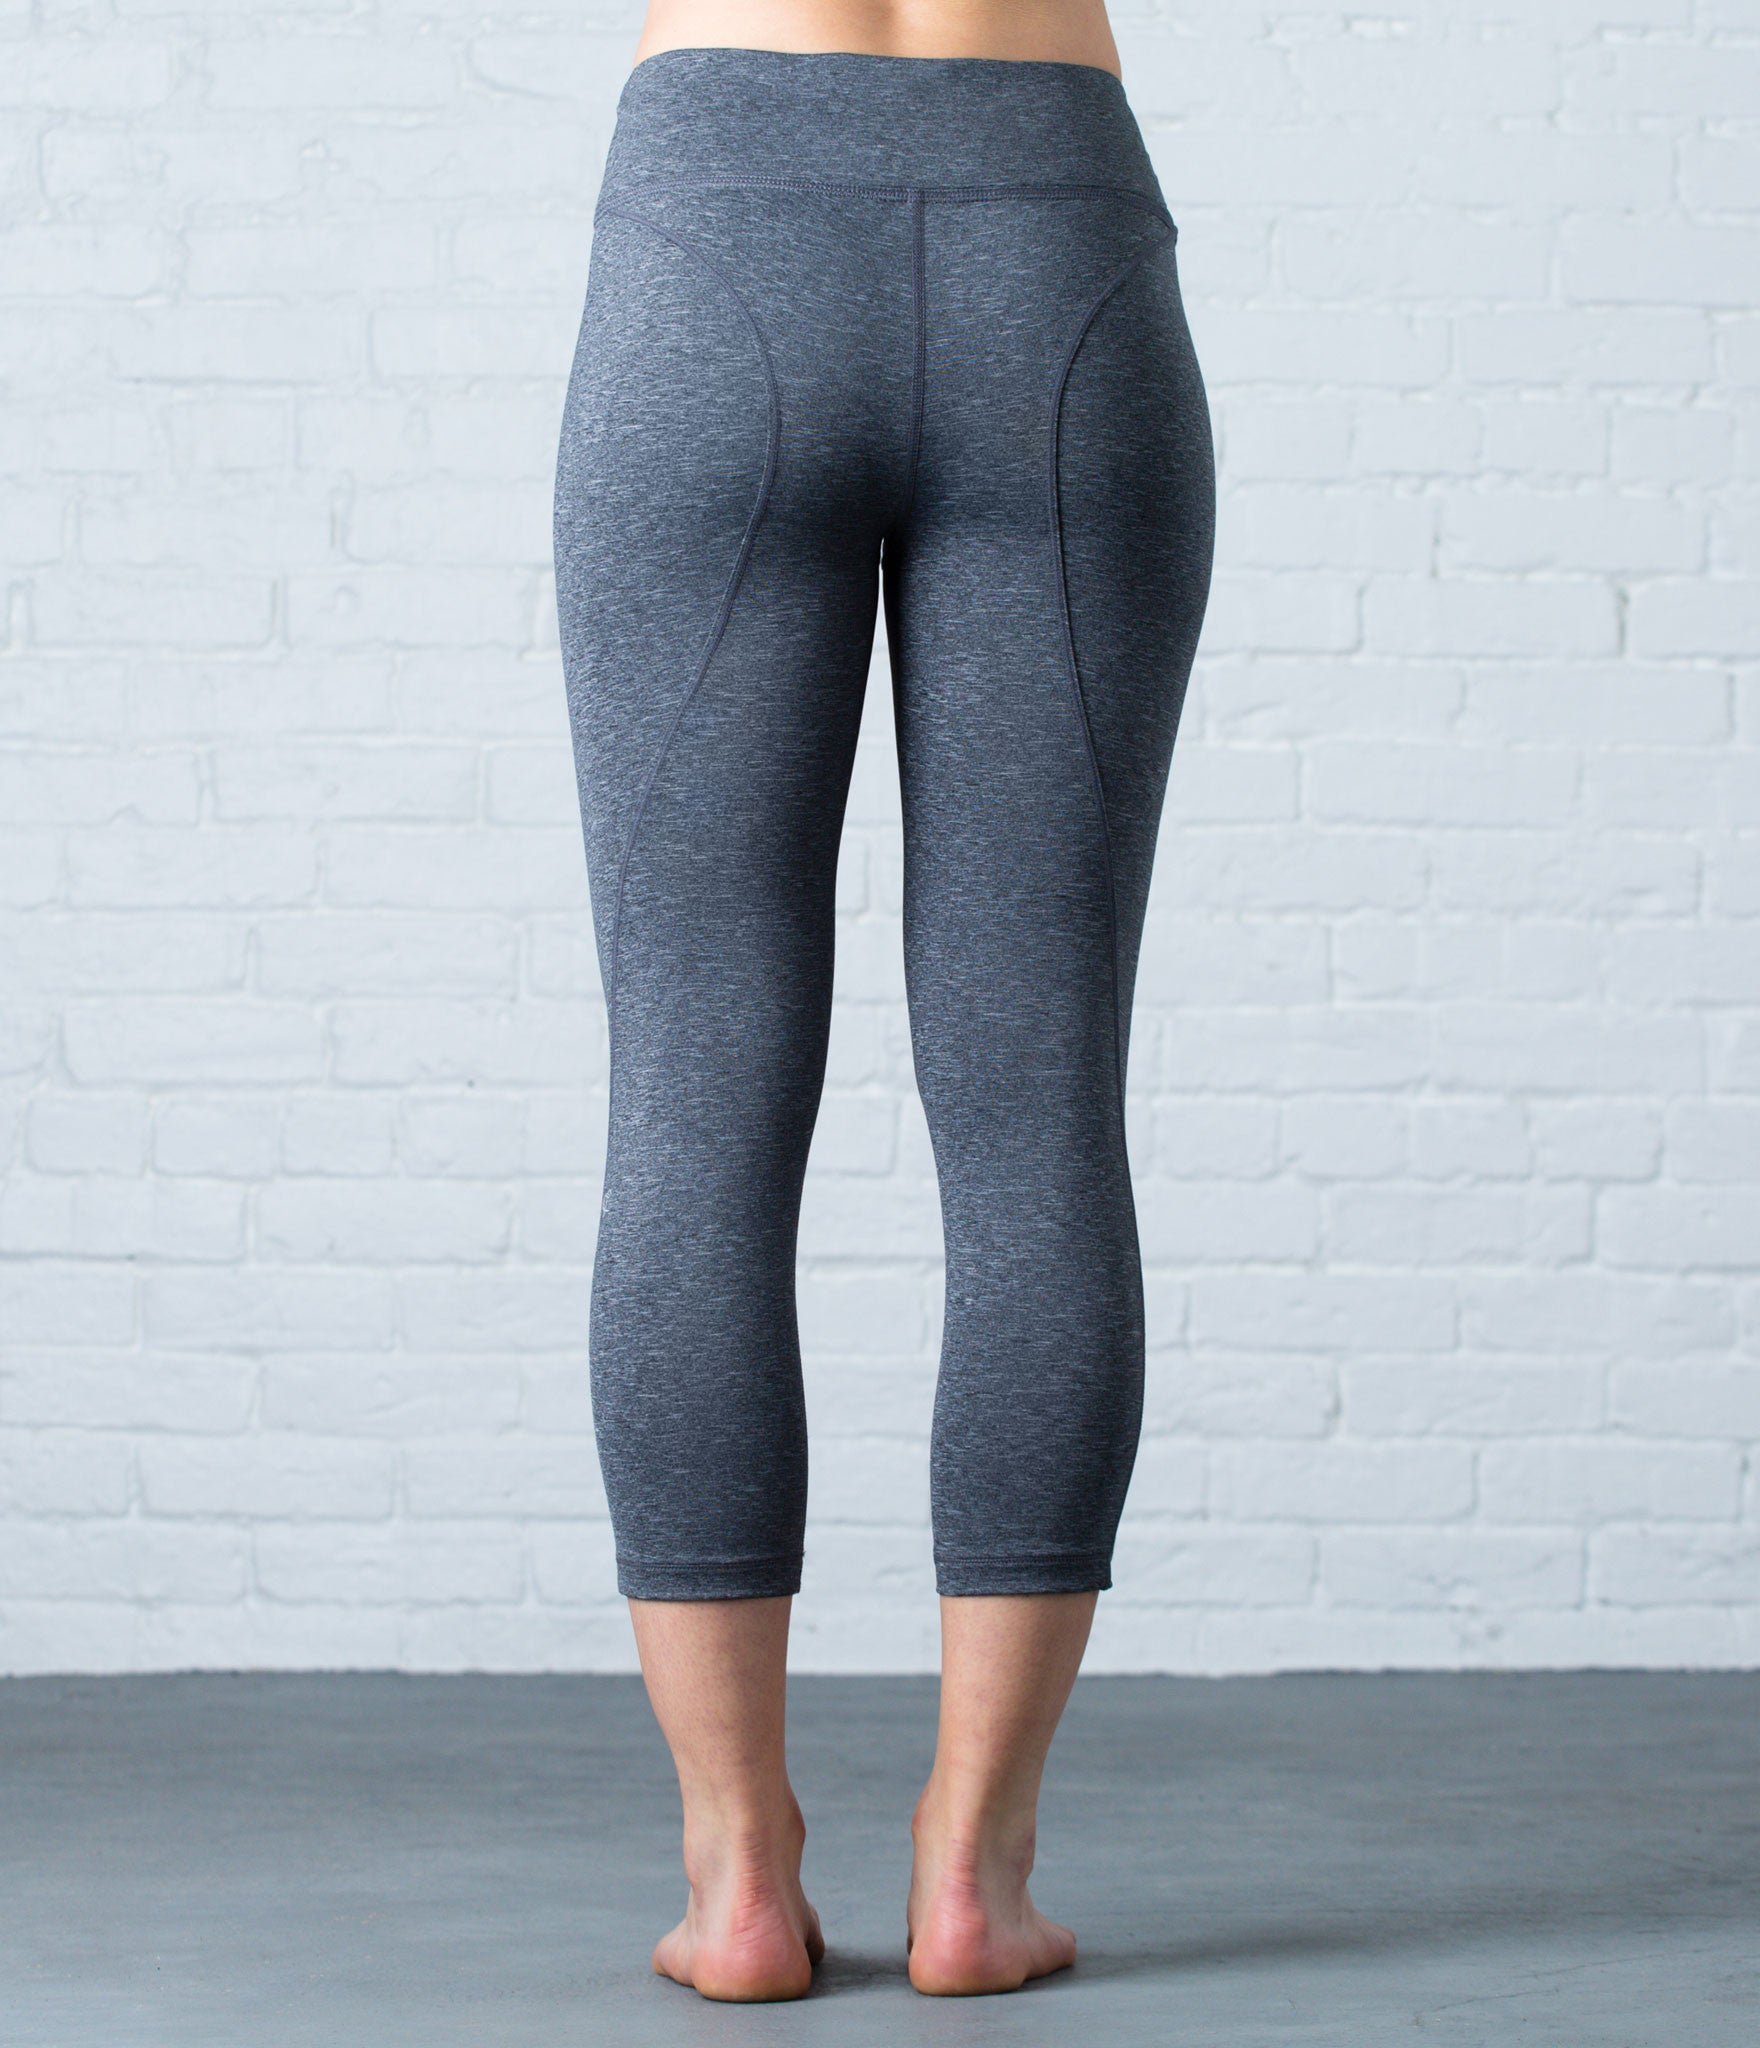 Lighweight Capri Tight